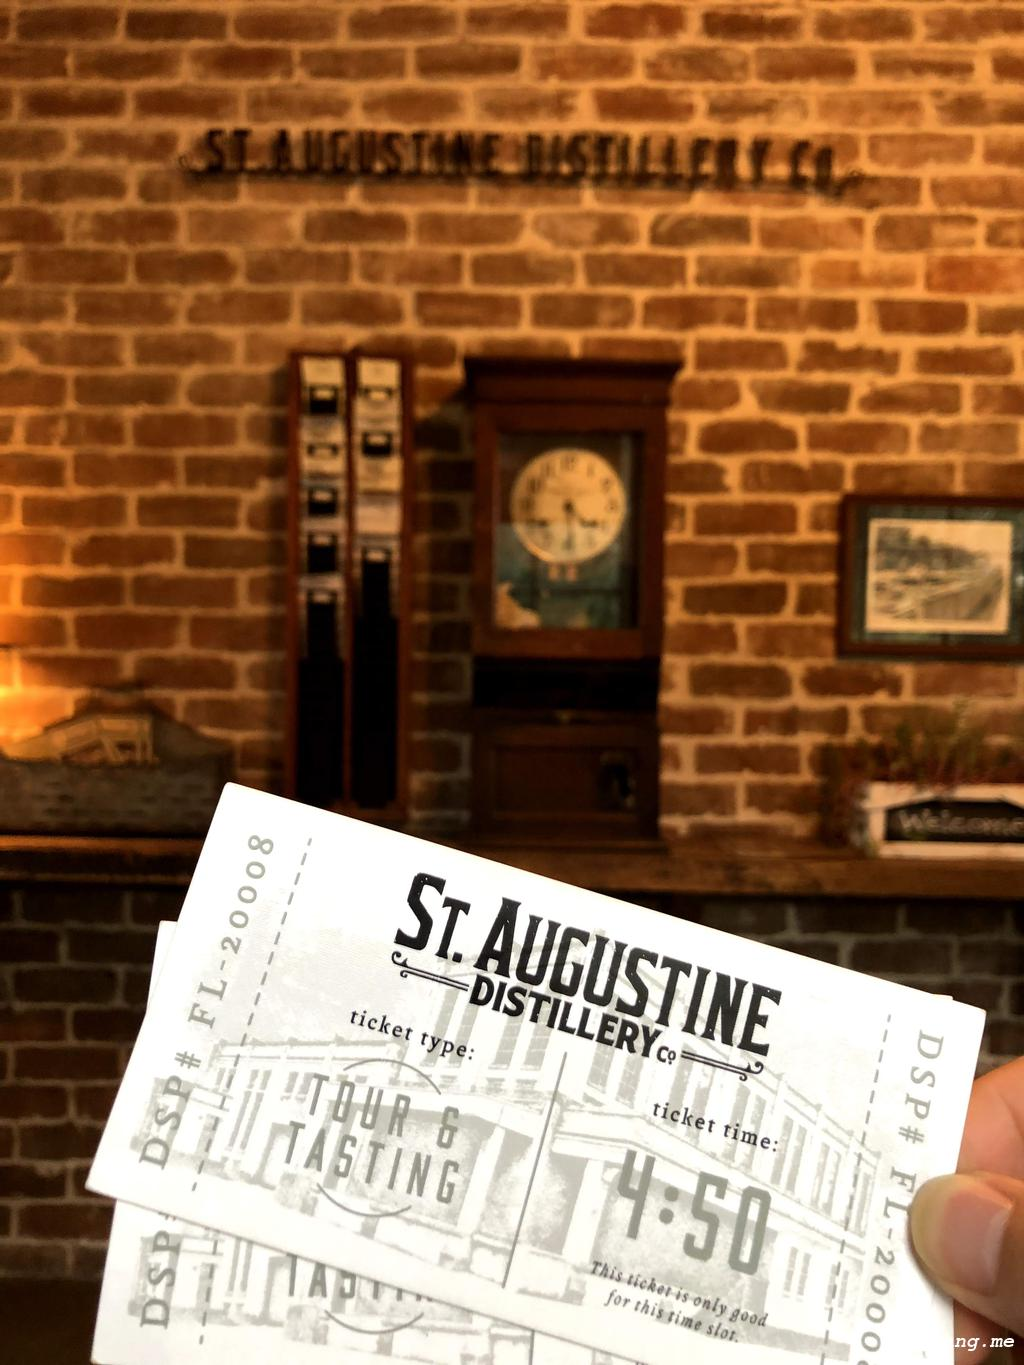 St Augustine Distillery tickets